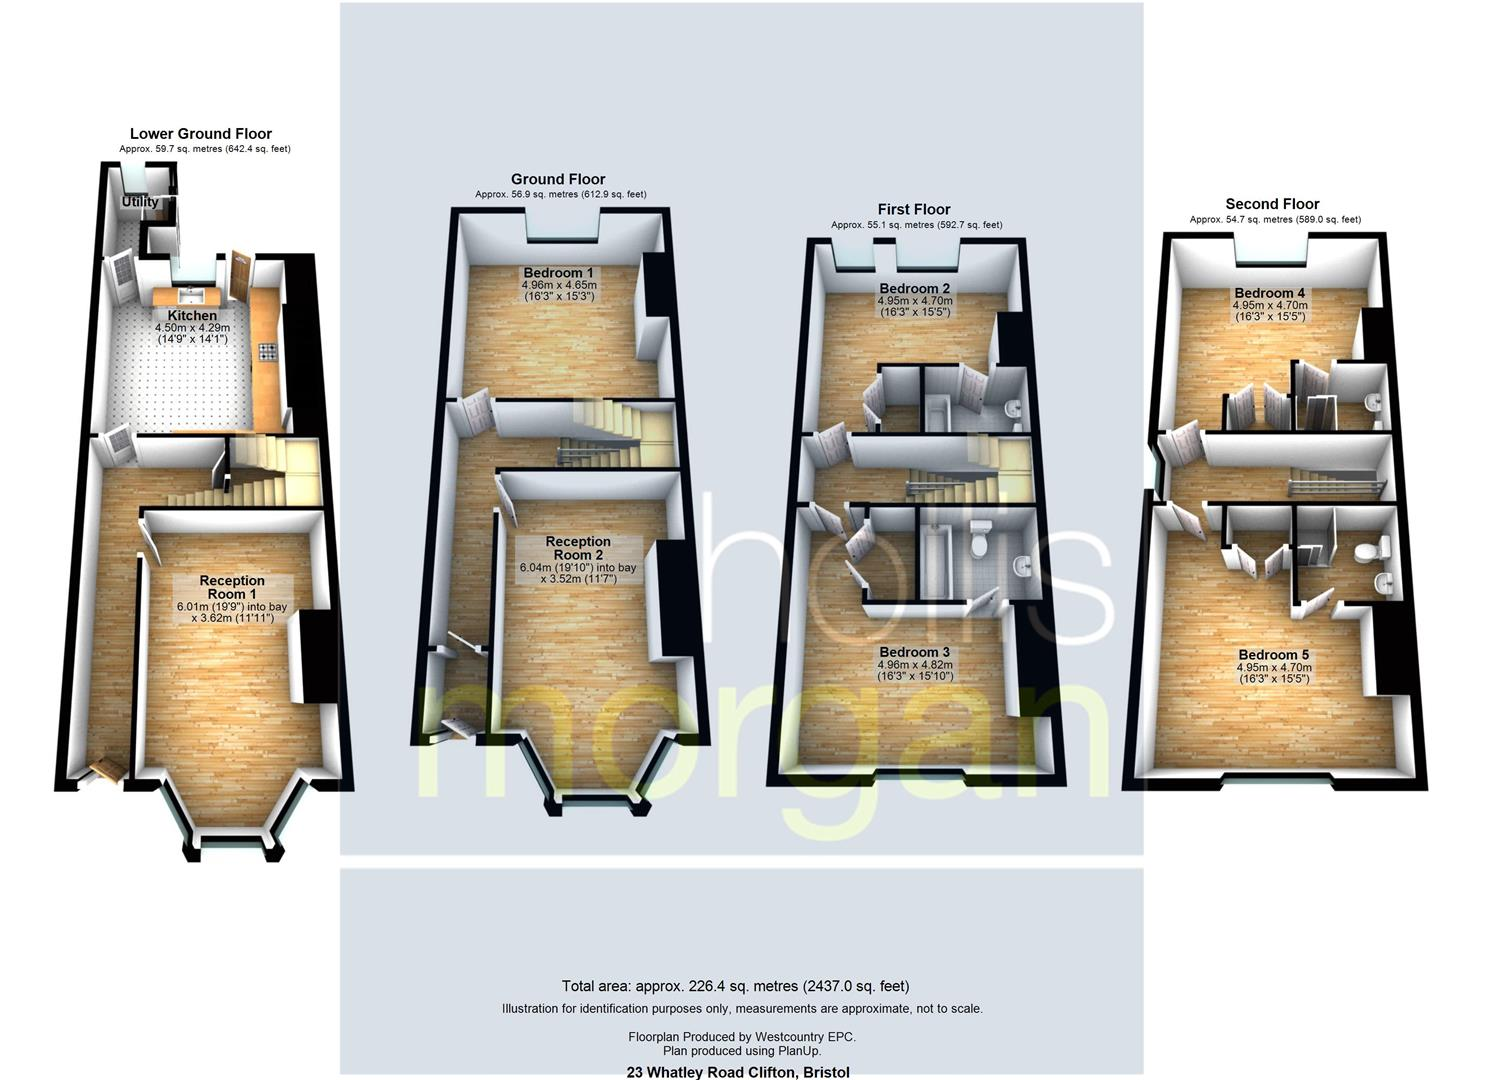 Floorplans For CLIFTON TOWNHOUSE / HMO FOR BASIC UPDATING